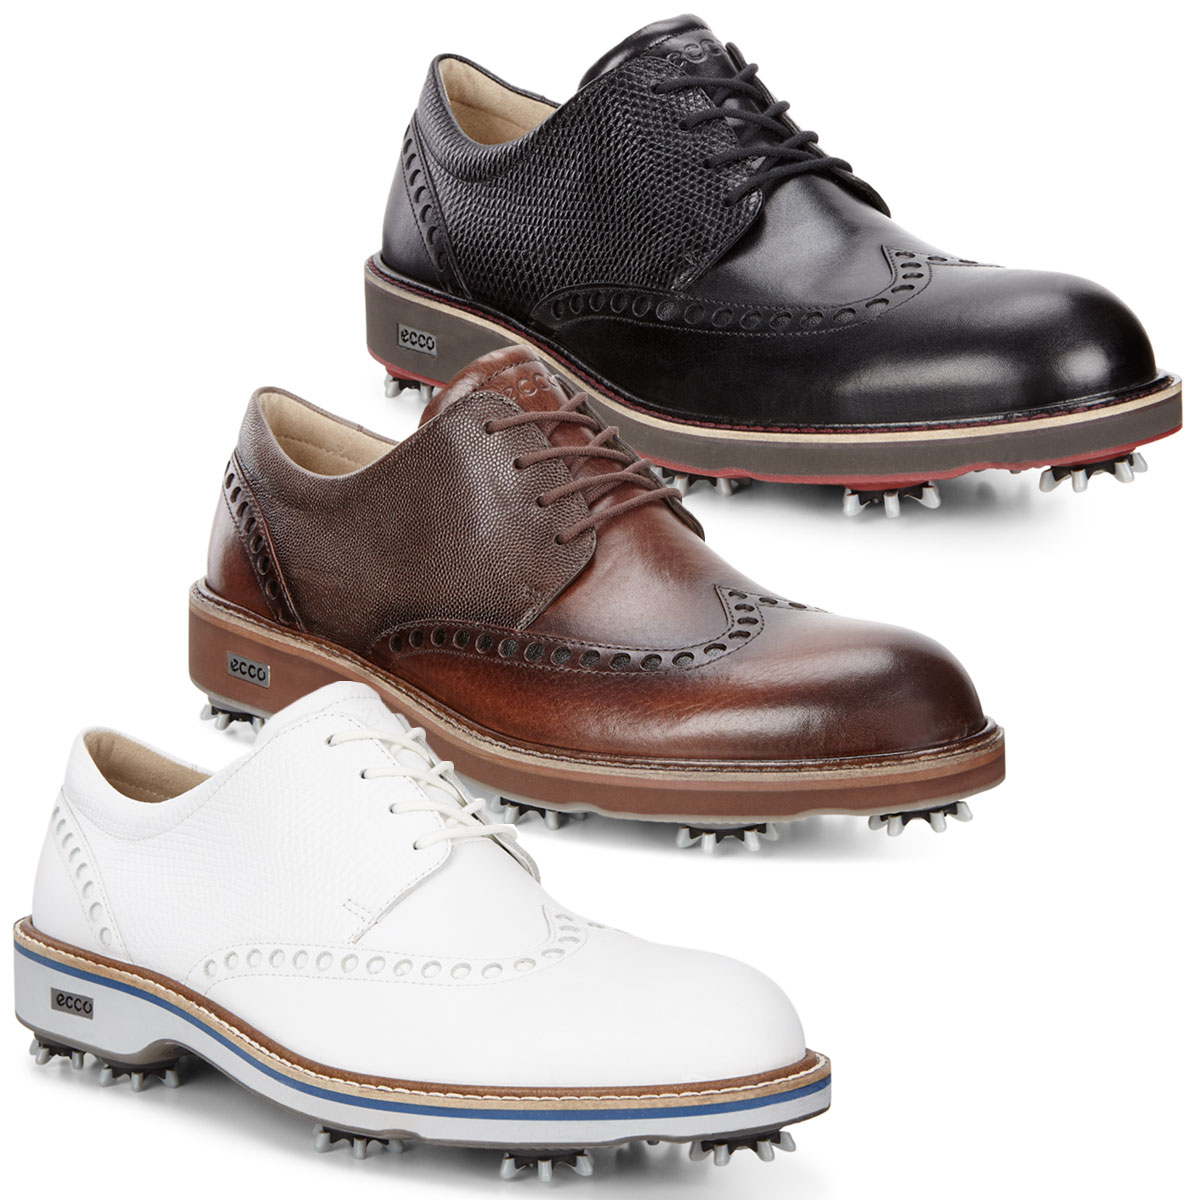 8d54566f410052 Ecco Mens Classic Lux Leather Spiked Brogue Golf Shoes